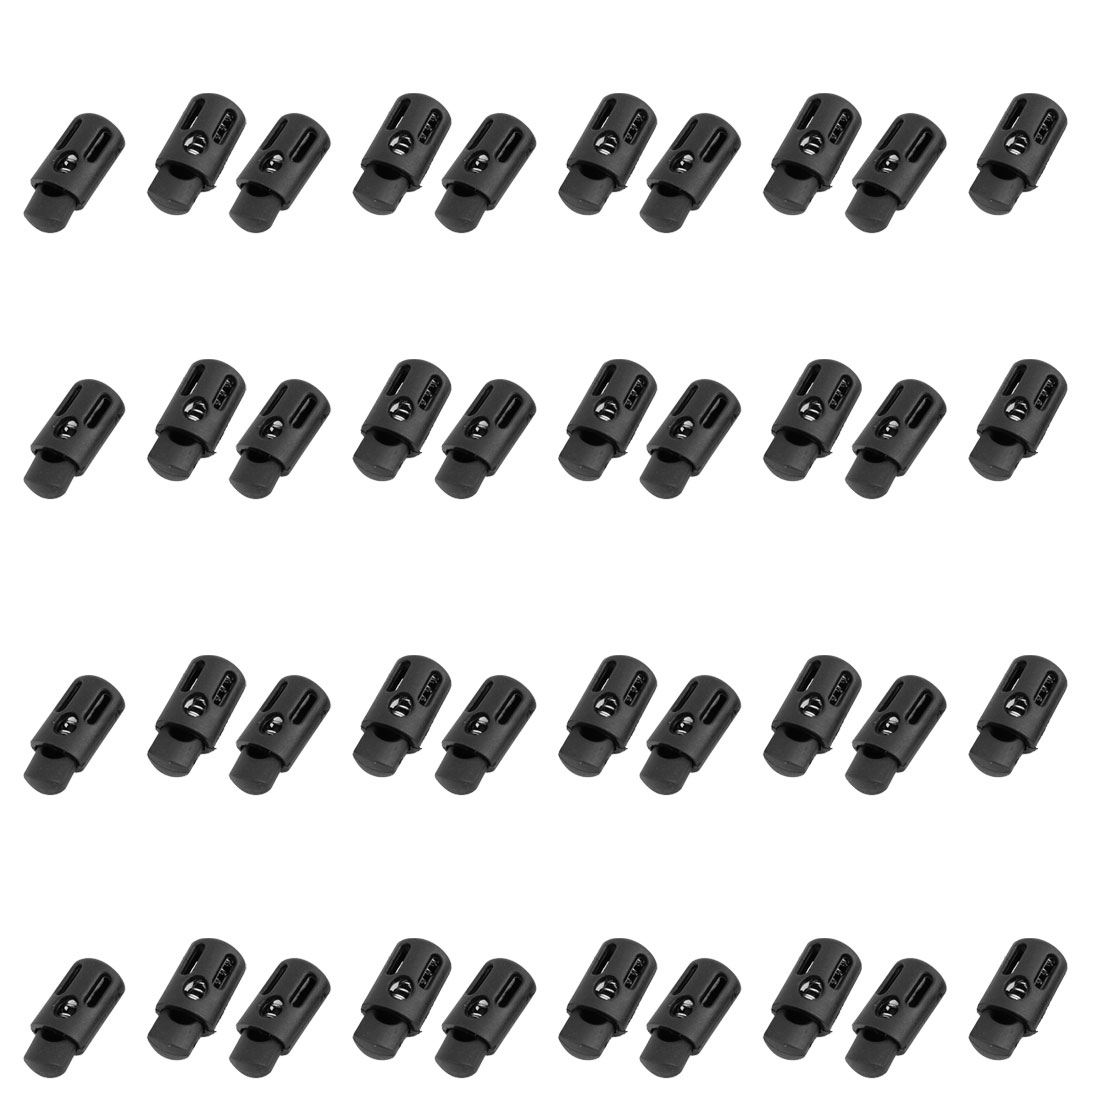 40pcs 4.5mm Diameter Hole Rope Cord Locks Ends Spring Stop Toggles Black